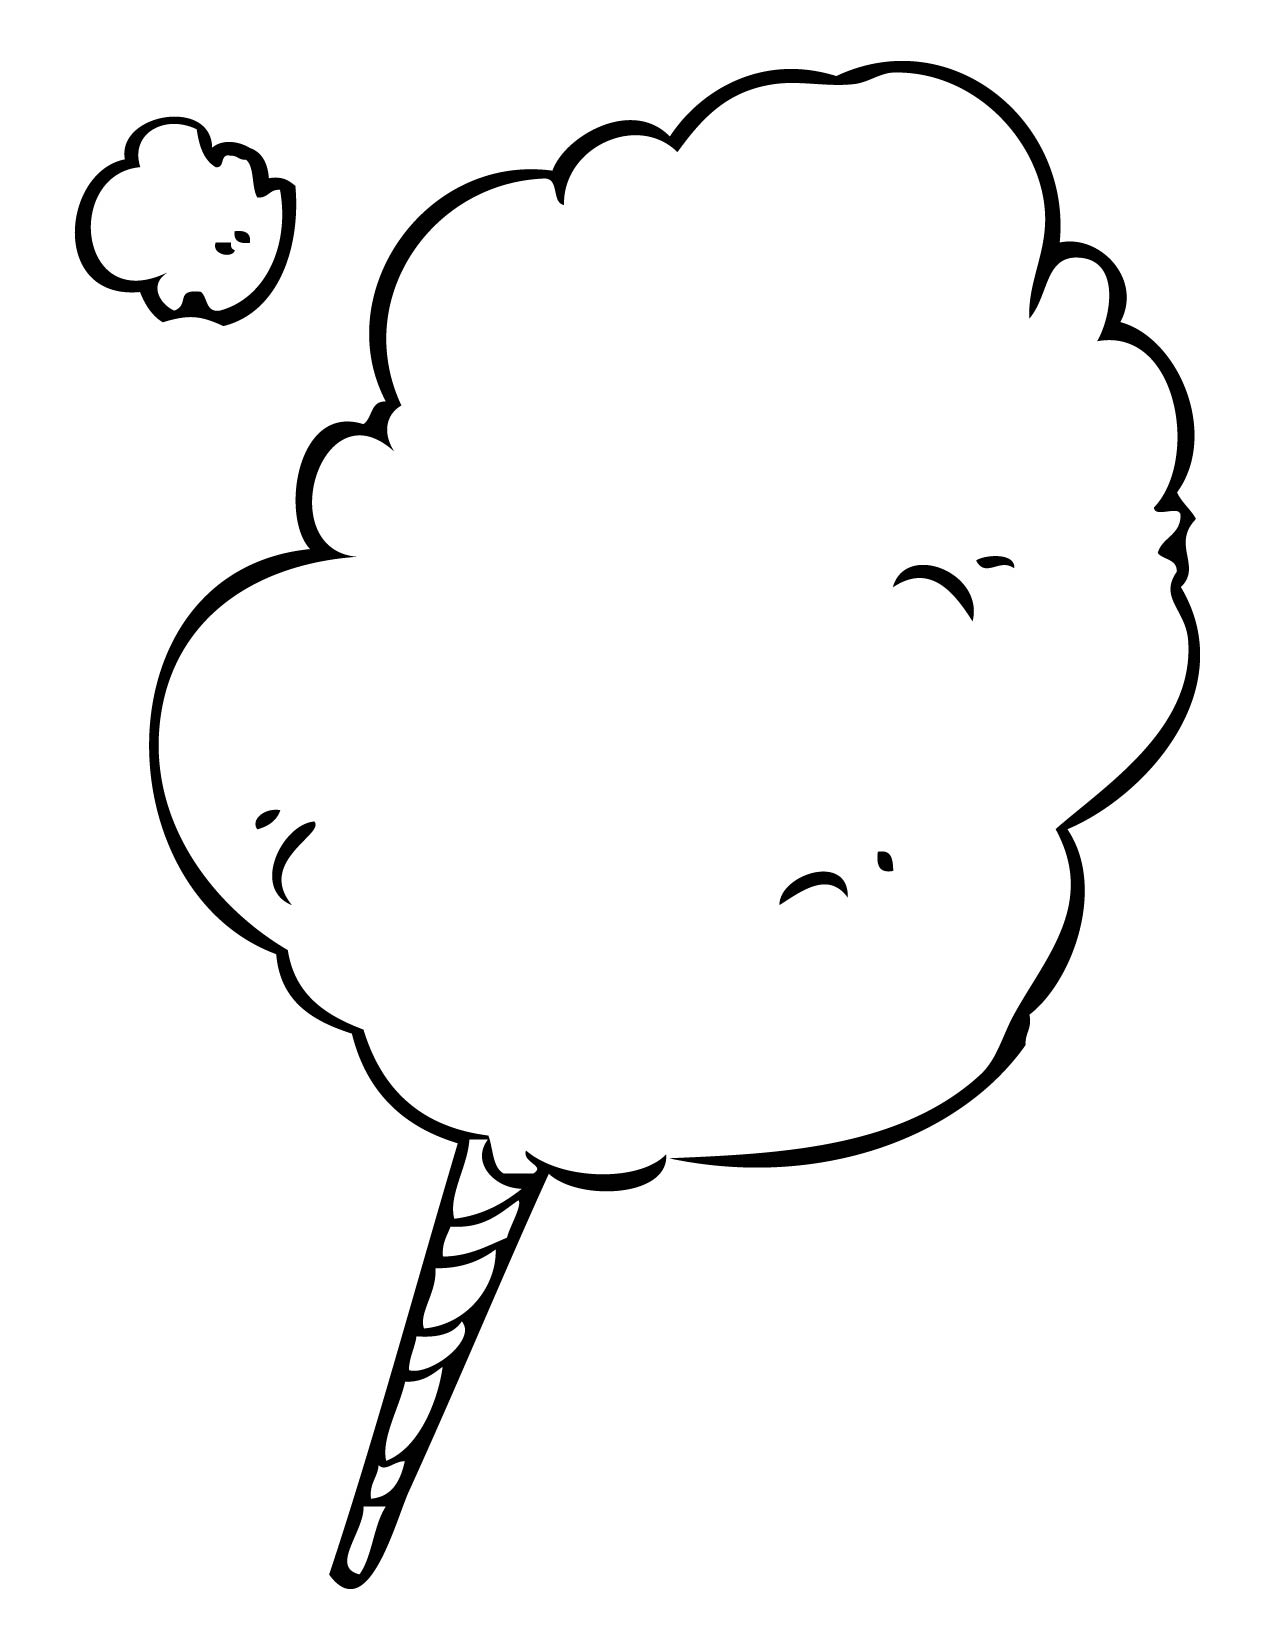 Cotton Candy Drawing Free Download On Clipartmag